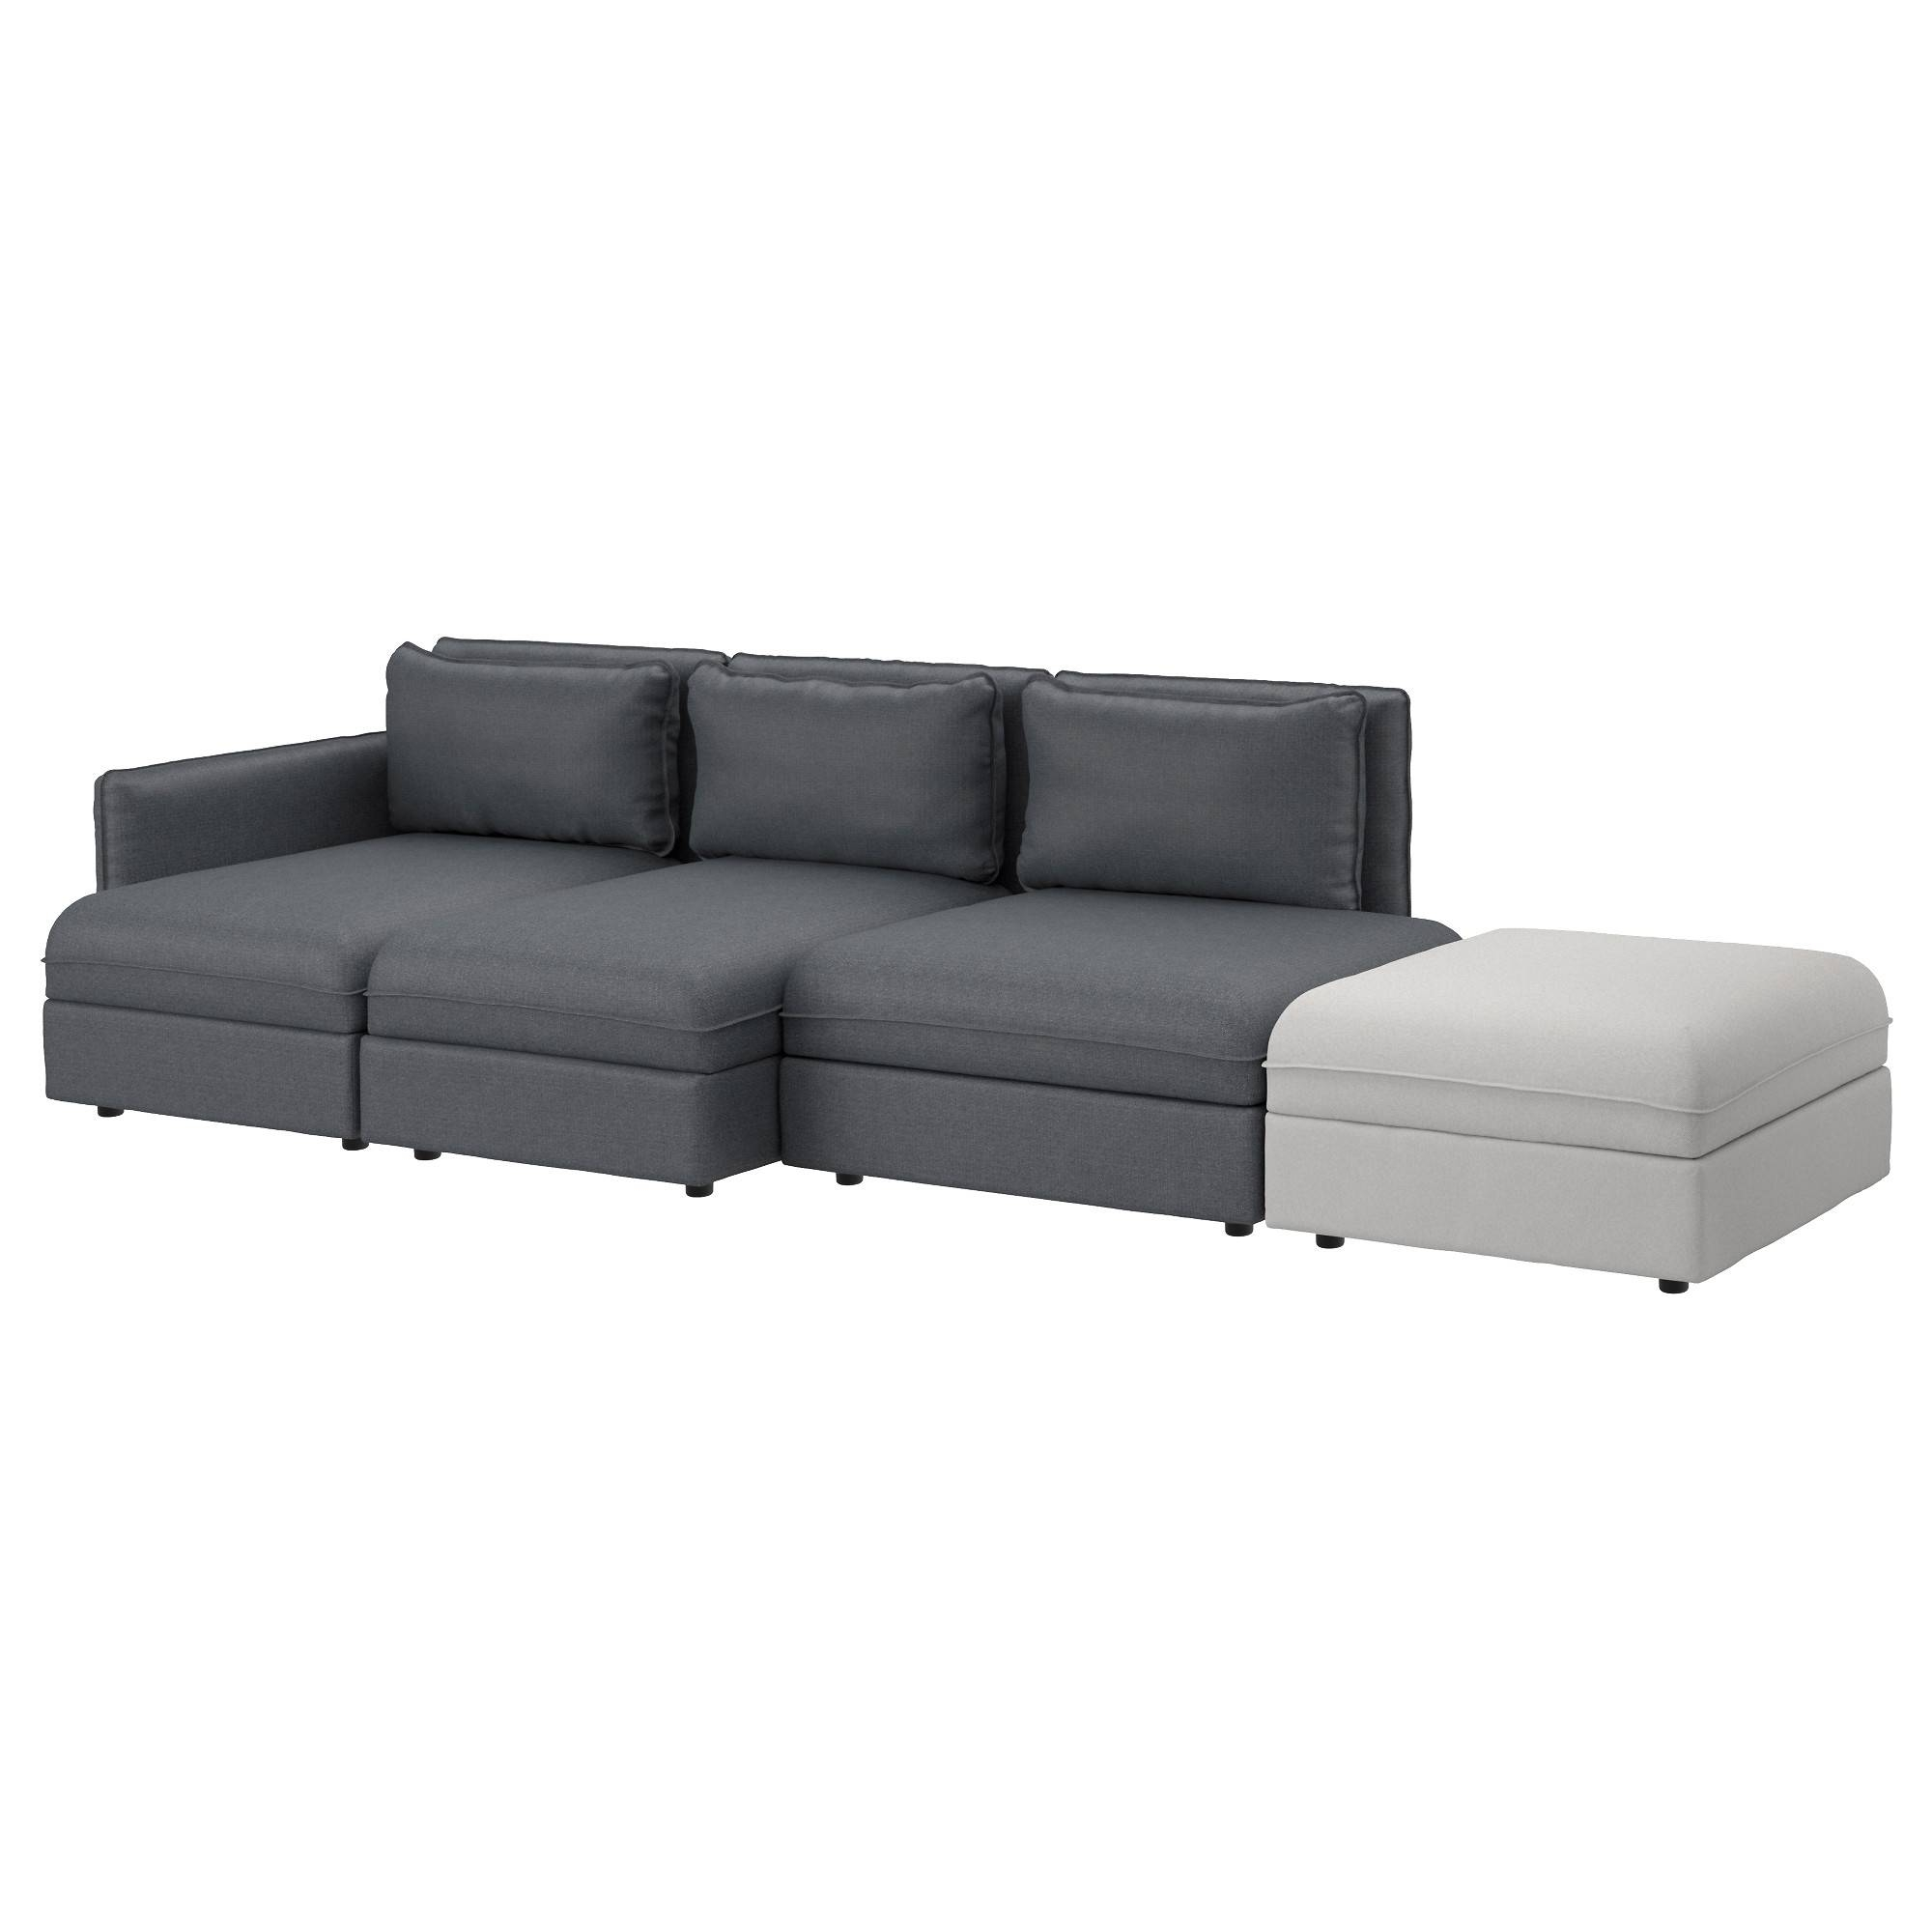 Sectional Sofas & Couches - Ikea intended for Angled Chaise Sofa (Image 19 of 30)